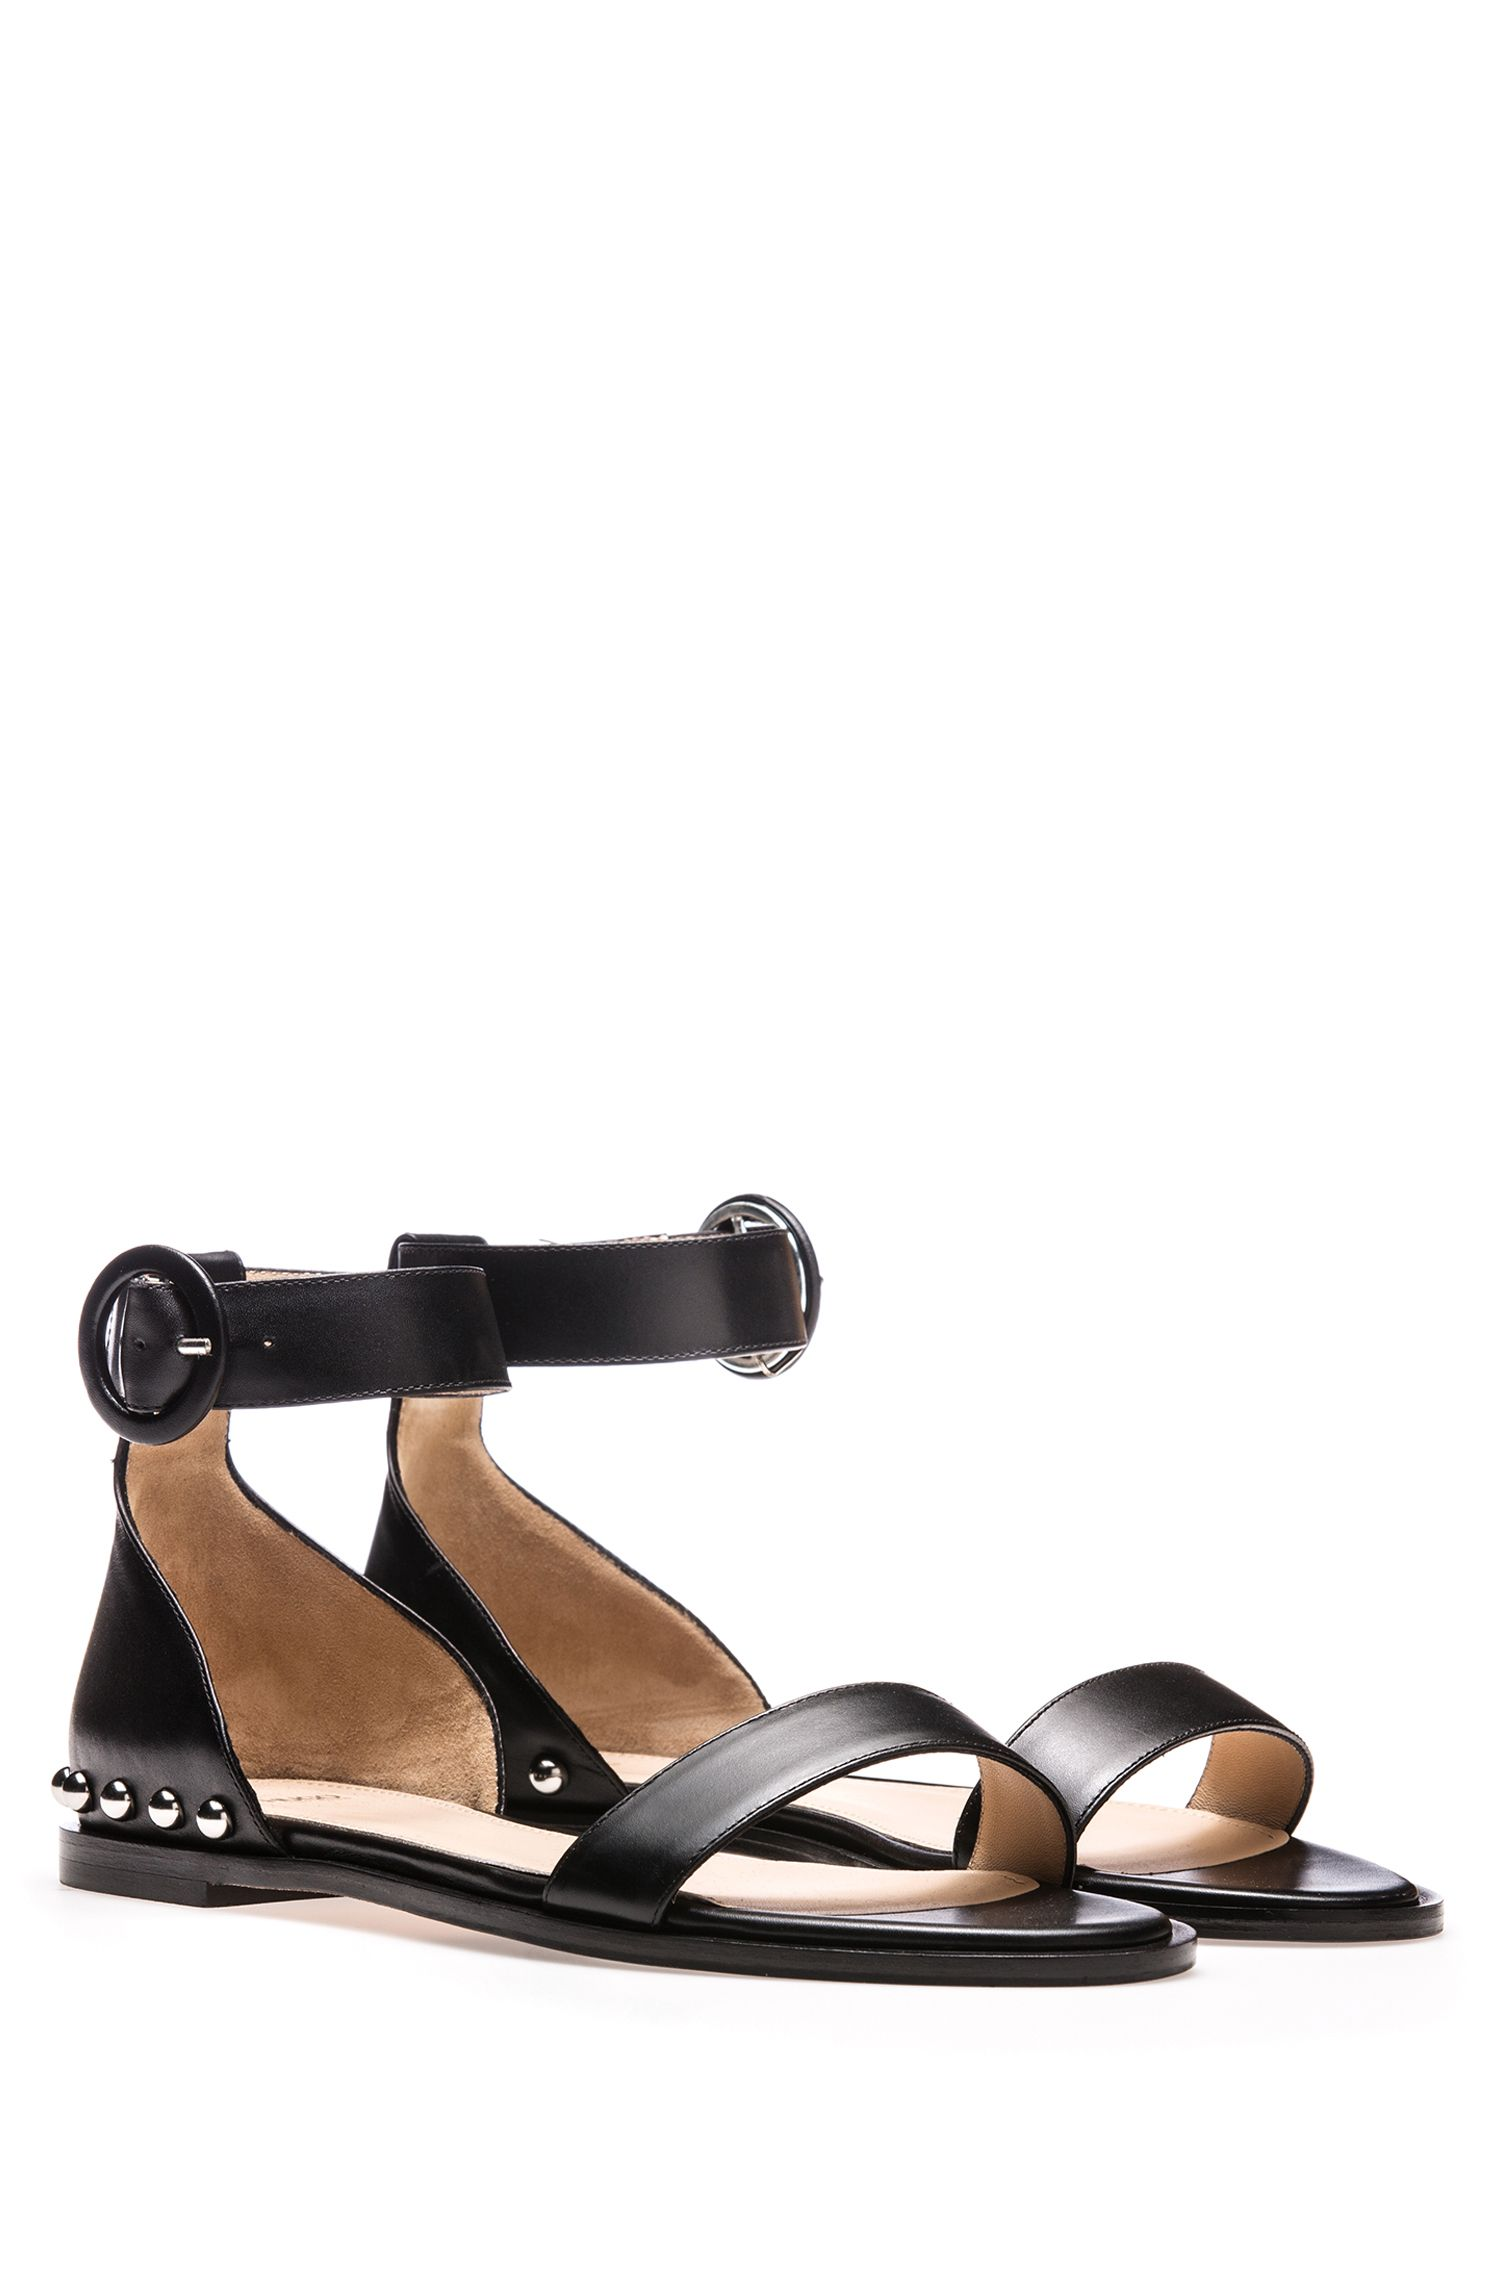 Calf-leather sandals with metal stud detailing